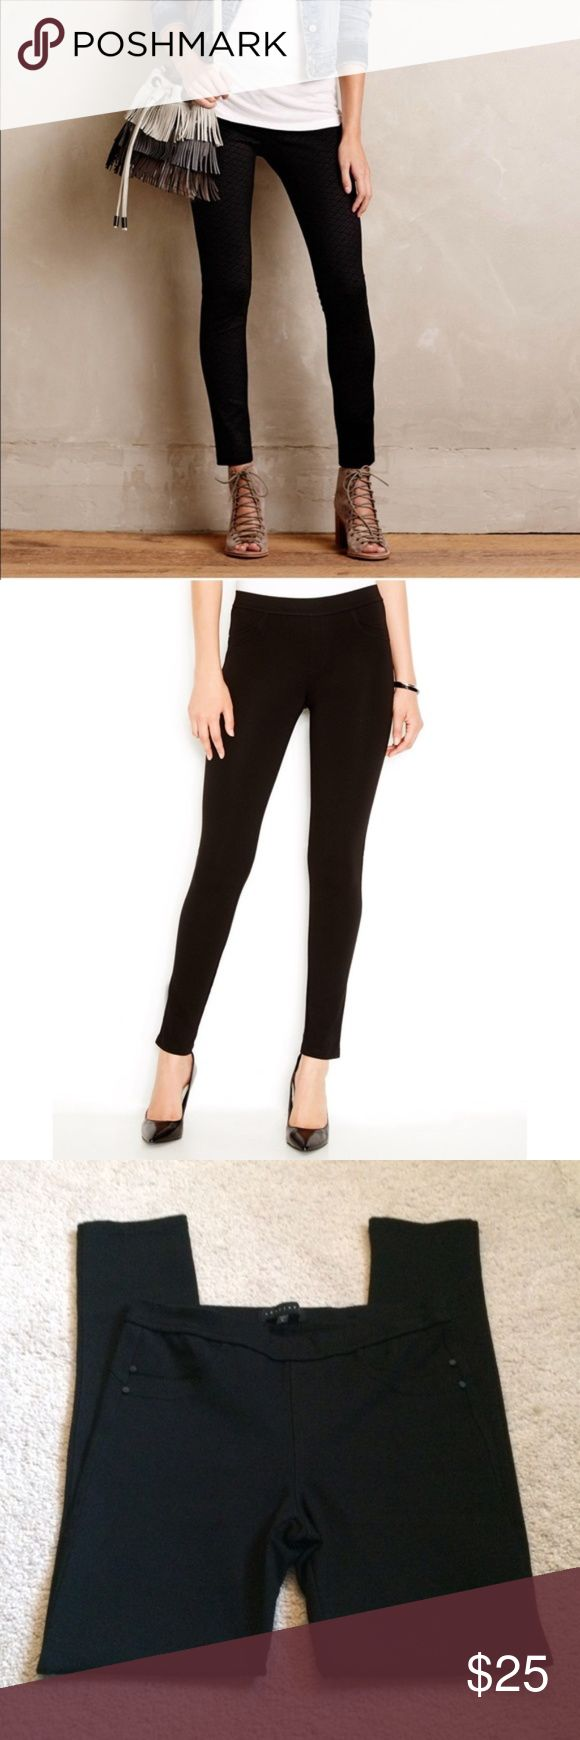 "NEW Sanctuary Black Ponte Leggings Pants Sz M NEW WITHOUT TAGS    These leggings provide a sleek foundation for casual looks with a mid rise and denim pocket styling. This super soft legging features an unique tri-blend stretch technology in knit ponte to provide an ultra-flattering shape.  Line across tag to avoid store returns. These pants are the best! Bundle and save 20%!   Front double scoop pocket detail Mid-weight super stretch ponte fabric Back curved yoke  Rise 9"" Inseam 29'' 68%…"